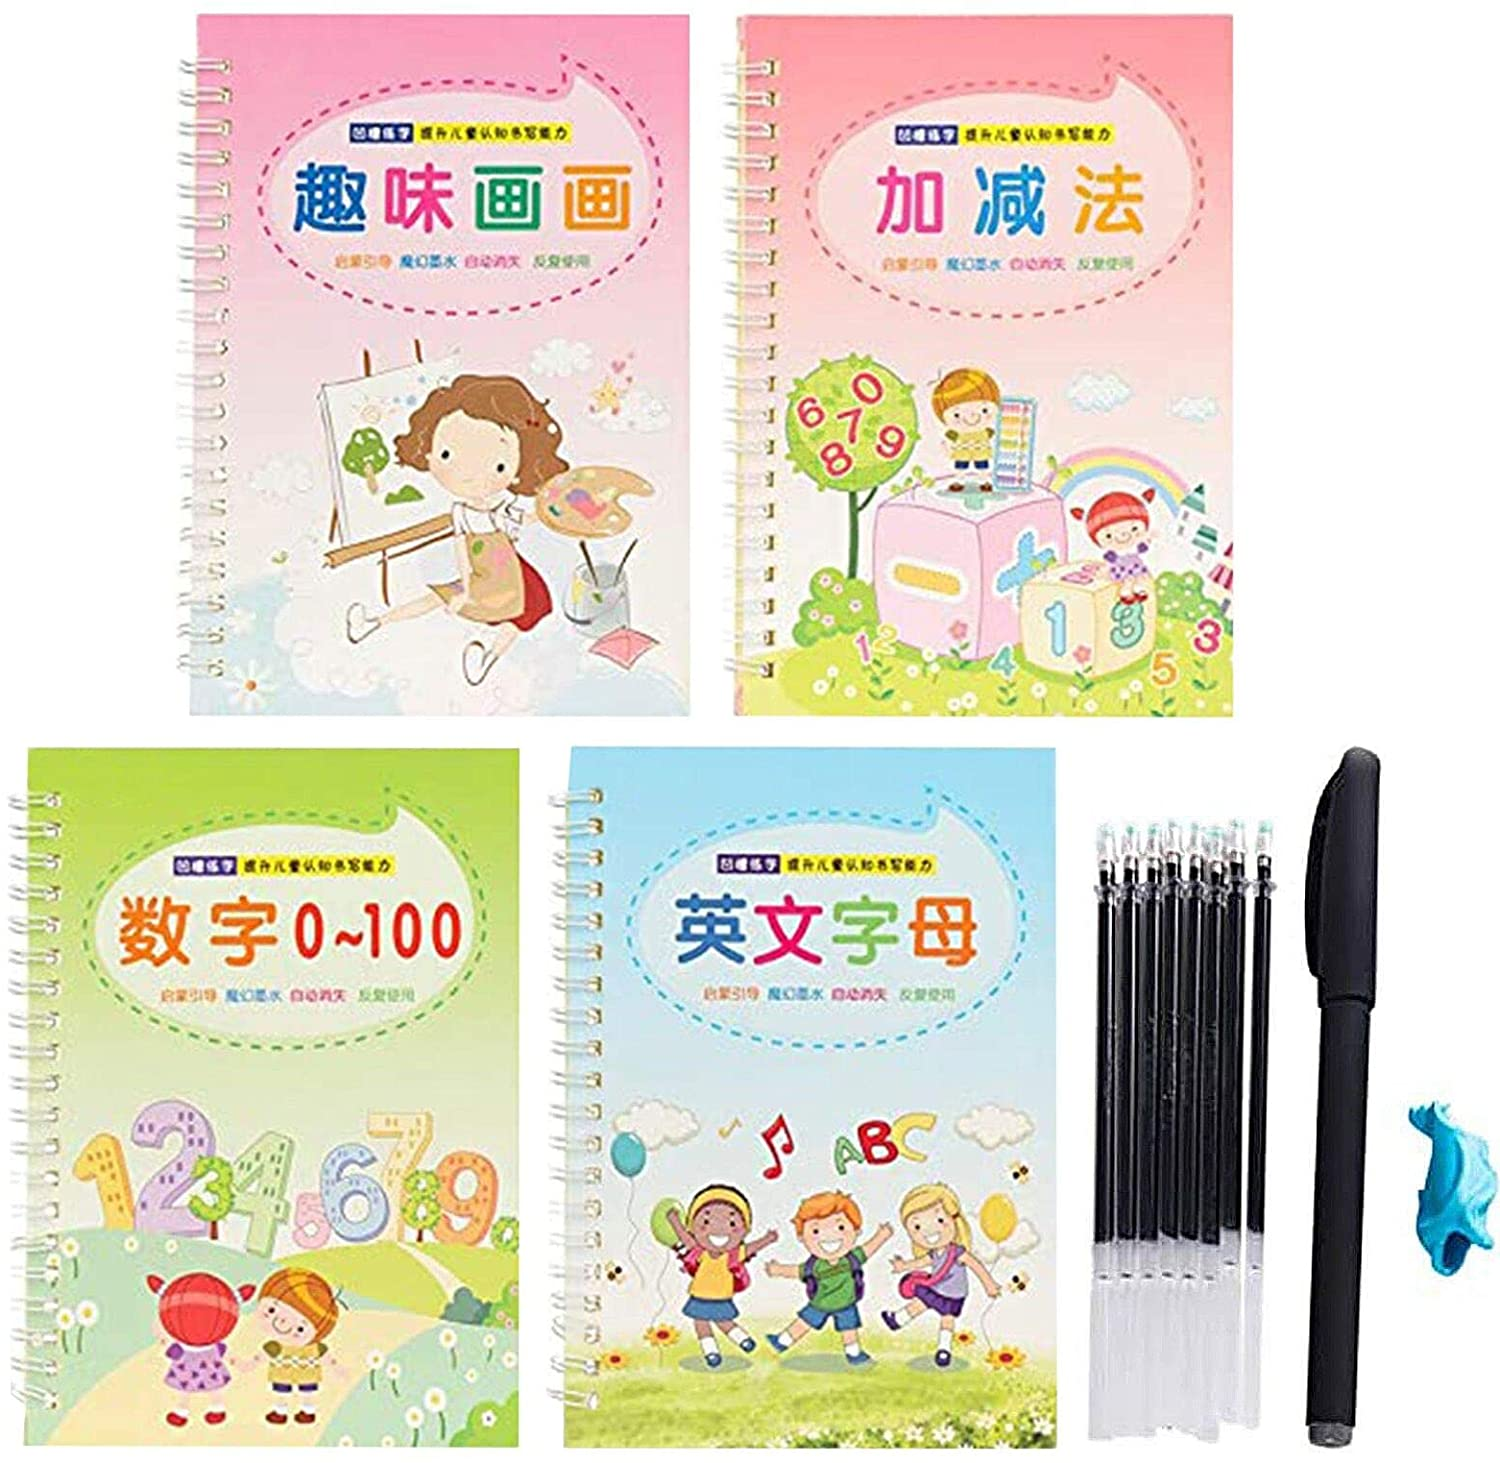 Magic Calligraphy That Can Be Reused, Sank Magic Practice Copybook for Preschoolers with Pen, Letters, Numbers, Drawing, Addition & Subtraction, Magic Calligraphy Copybook (4 Book+1 Pen+8 Refill-B)